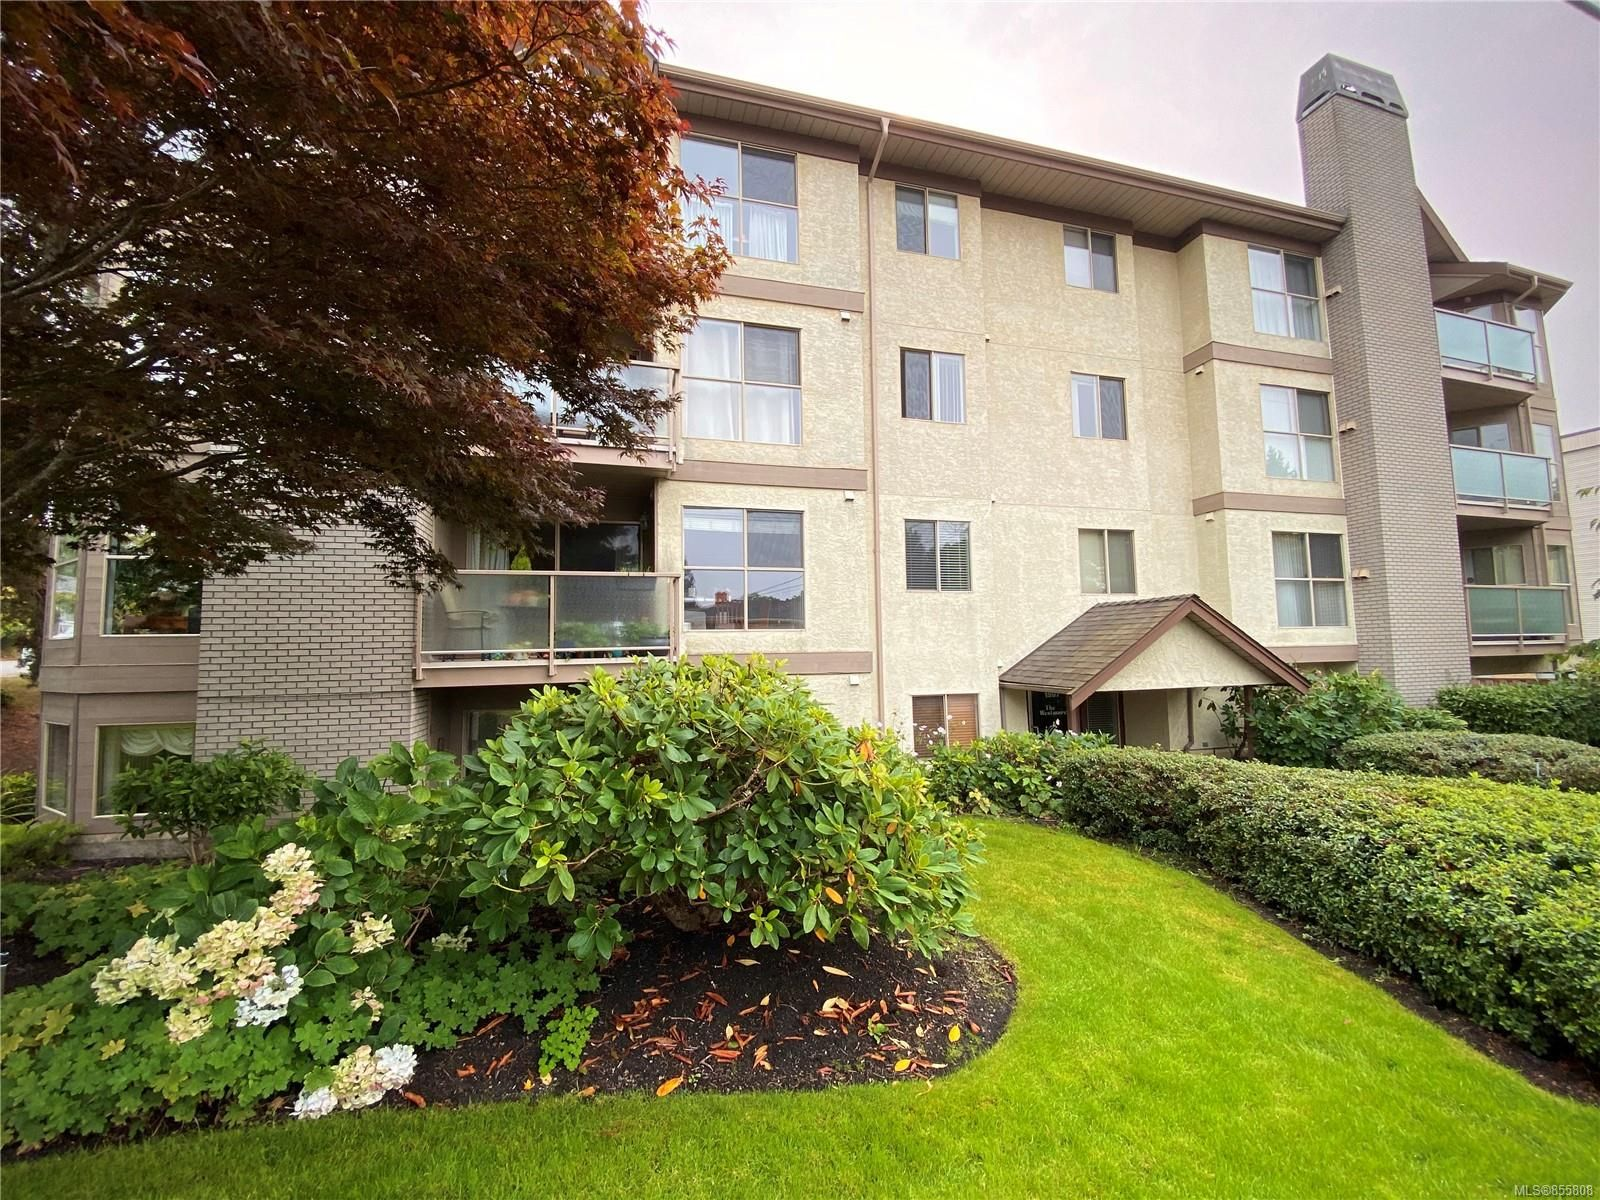 Main Photo: 101 1597 Mortimer St in : SE Mt Tolmie Condo for sale (Saanich East)  : MLS®# 855808